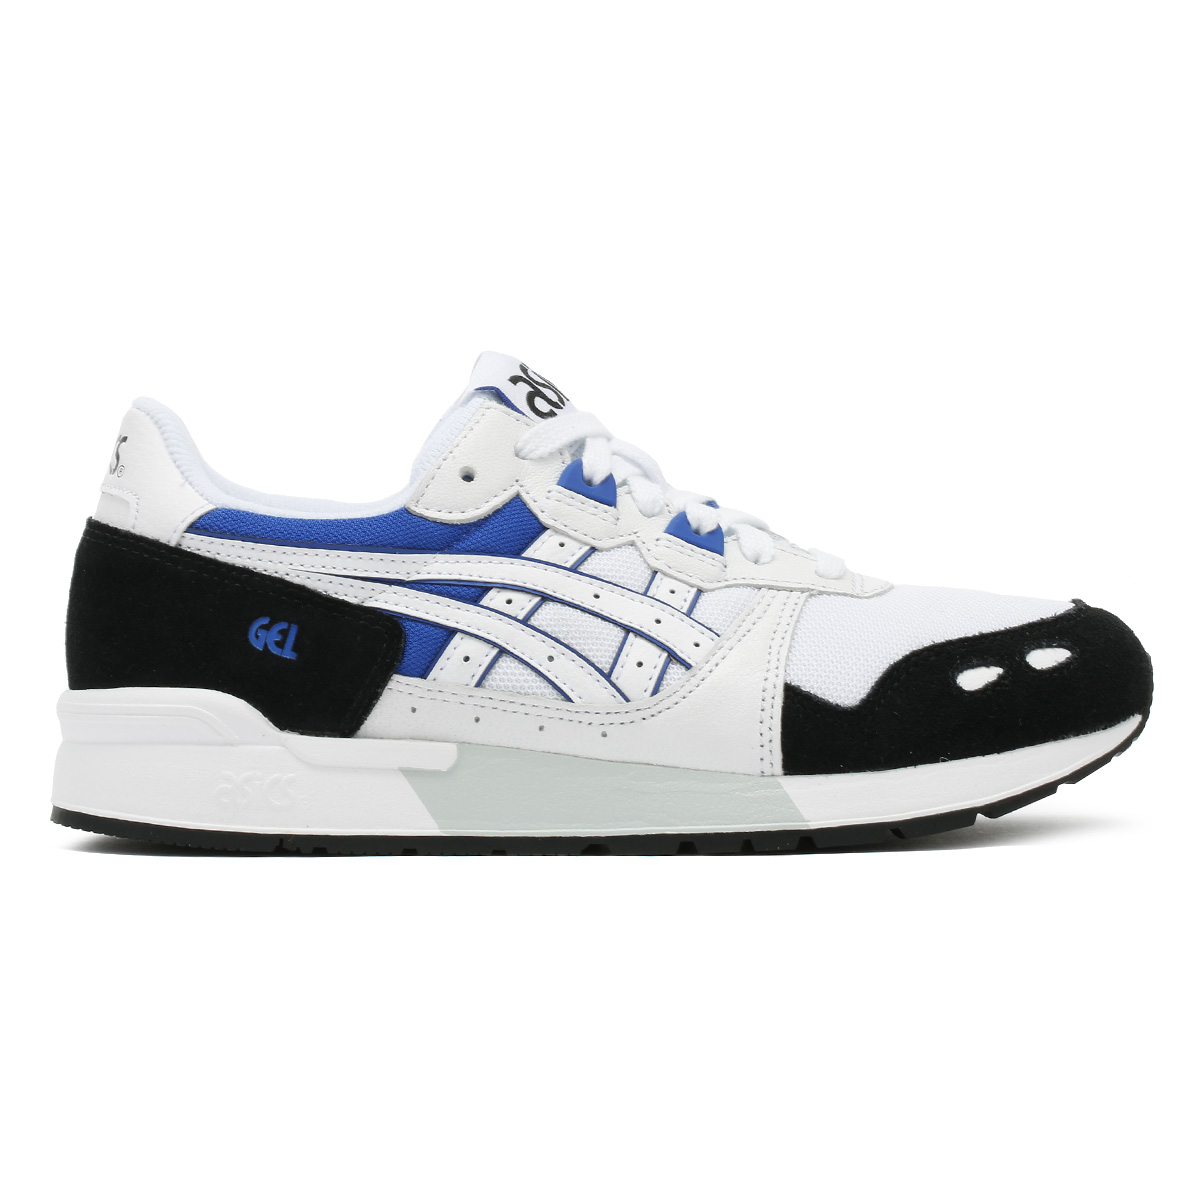 ASICS Gel-Lyte Unisex Trainers Running Weiß & Blau Sport Casual Running Trainers Schuhes 2ab5e7